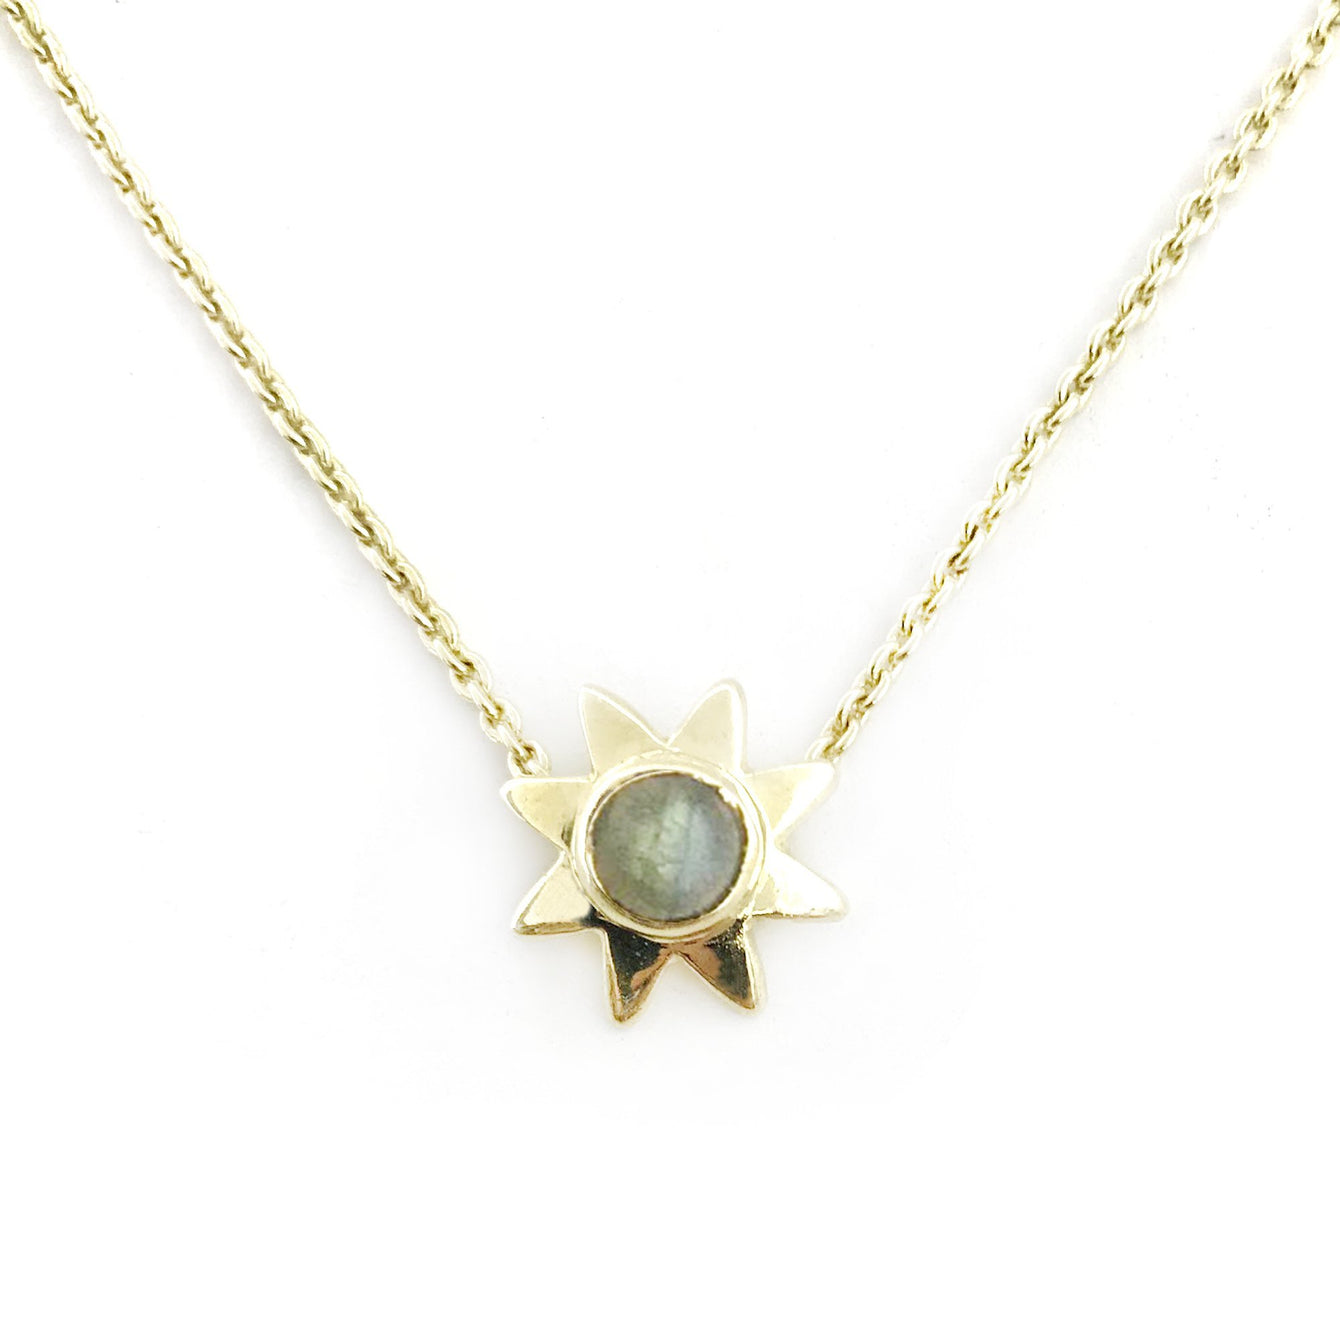 Starr Genuine Gemstone Pendant Necklaces-Women - Jewelry - Necklaces-ADDISON WEEKS-Labradorite-Peccadilly